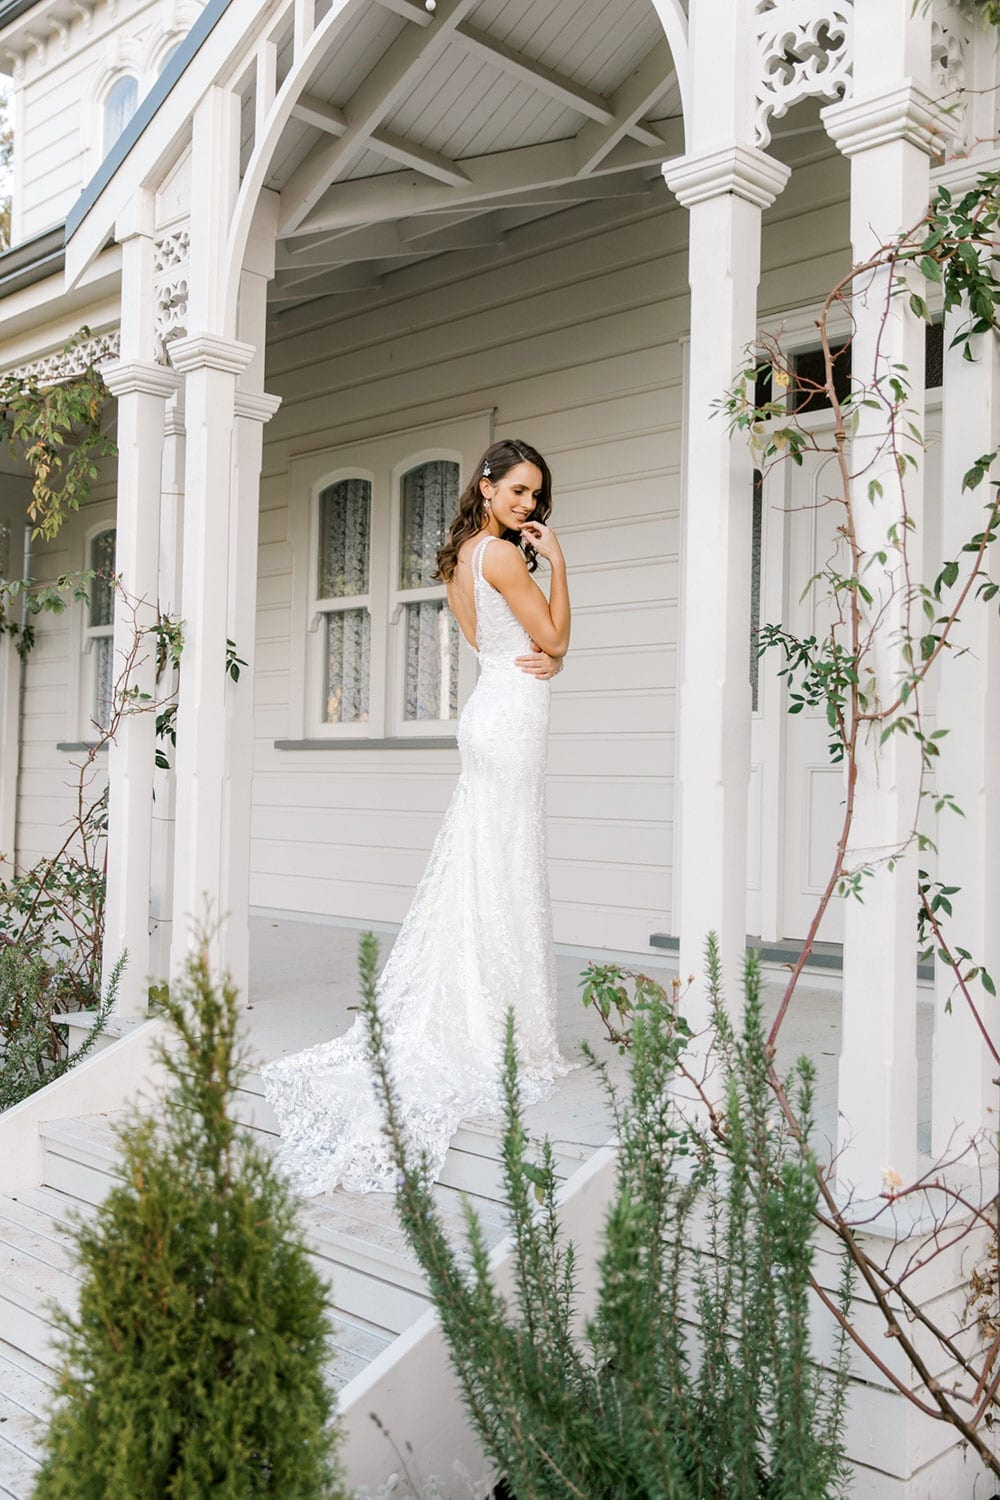 Model wearing Vinka Design Camille Wedding Dress, a Timeless Fitted Wedding Gown on the veranda of a wooden building with an arch facing away showing low back on dress through garden